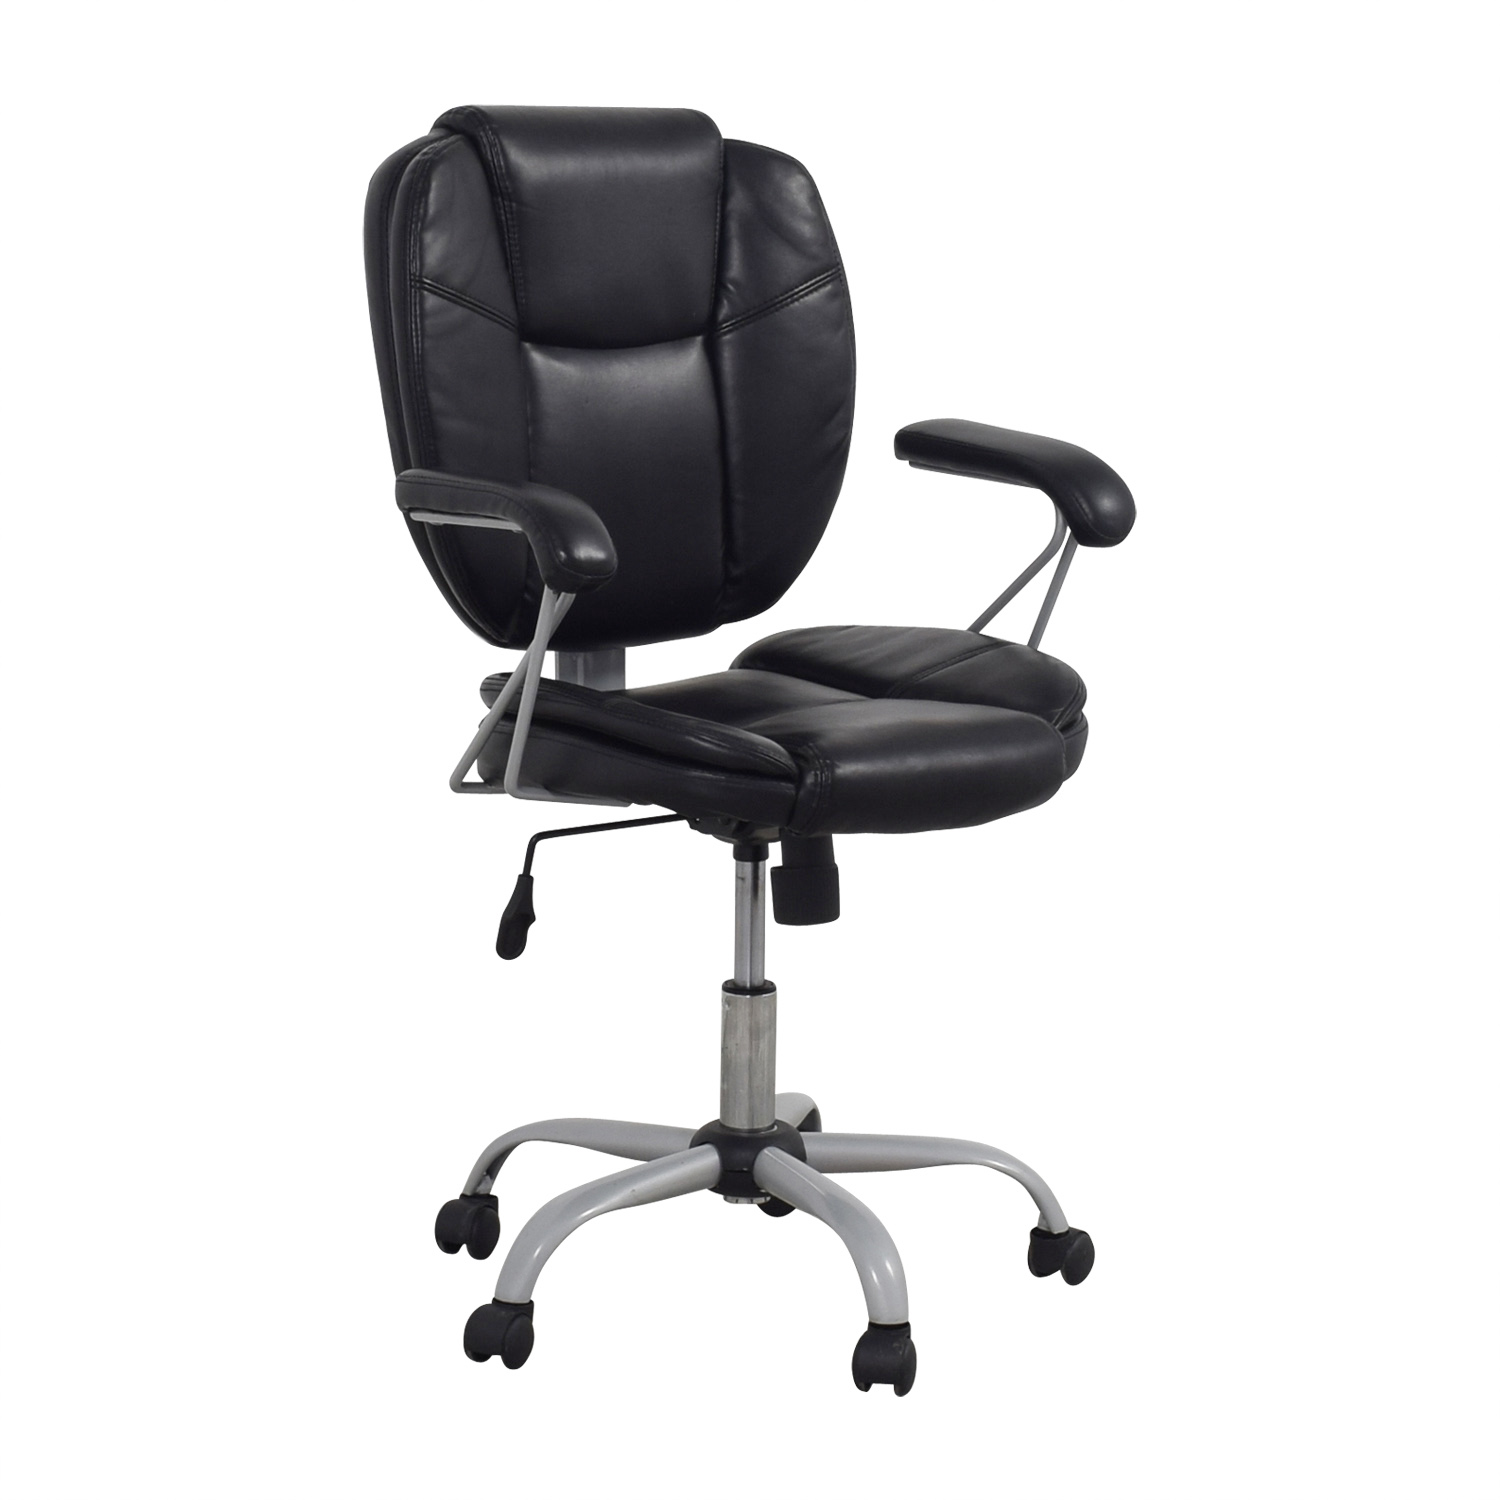 87 off black leather desk chair chairs. Black Bedroom Furniture Sets. Home Design Ideas